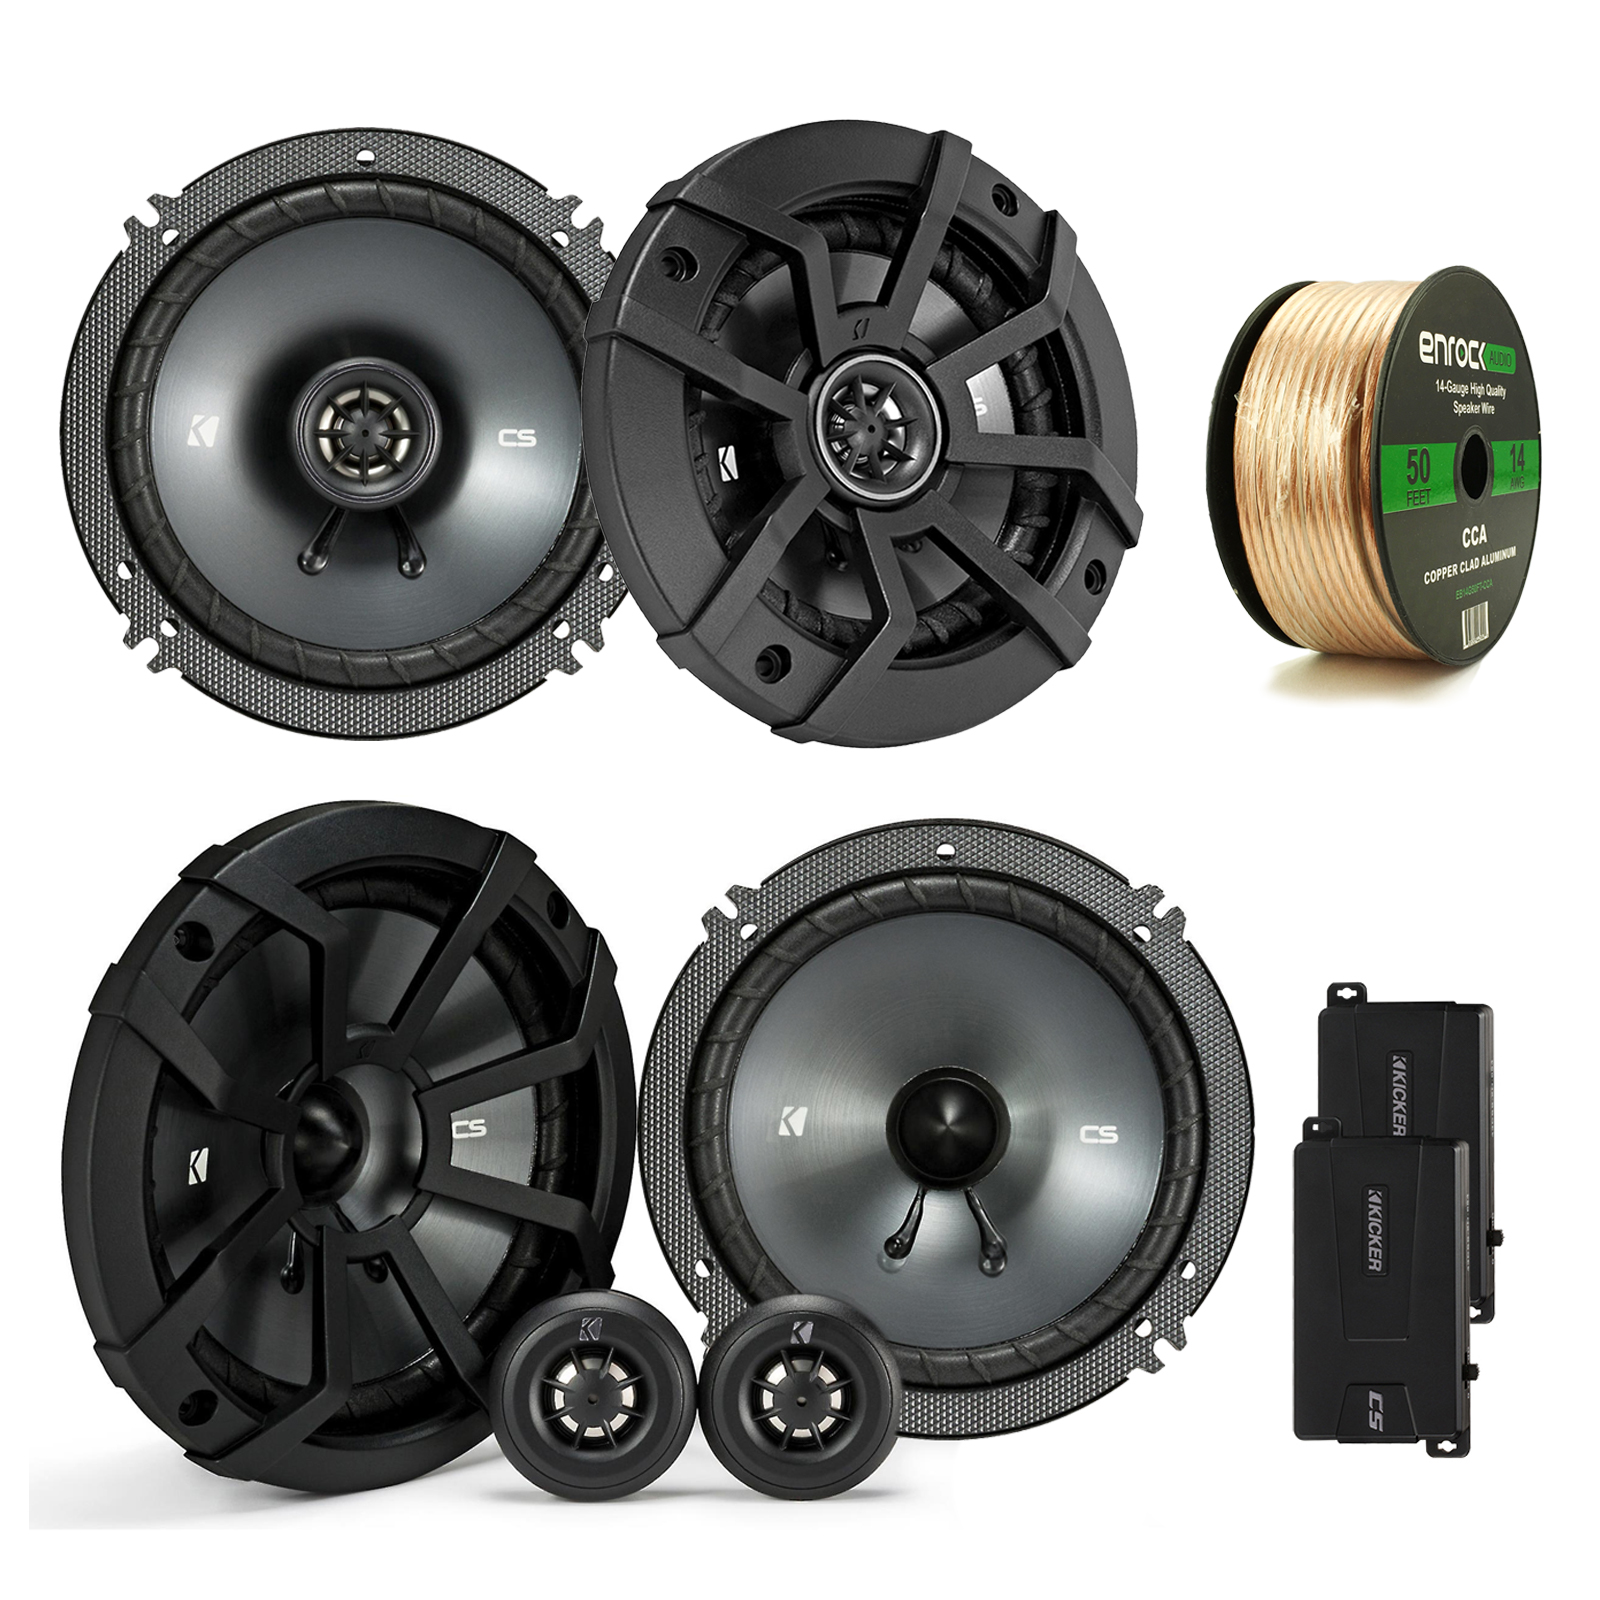 """Kicker 43CSS654 6.5"""" 4-Ohm Component Speakers System, and Kicker 43CSC654 600-Watt 6-1/2"""" CS Series 2-Way Black Car Coaxial Speakers, w/ Enrock Audio 14 AWG Gauge 50 Feet Speaker Wire Cable"""